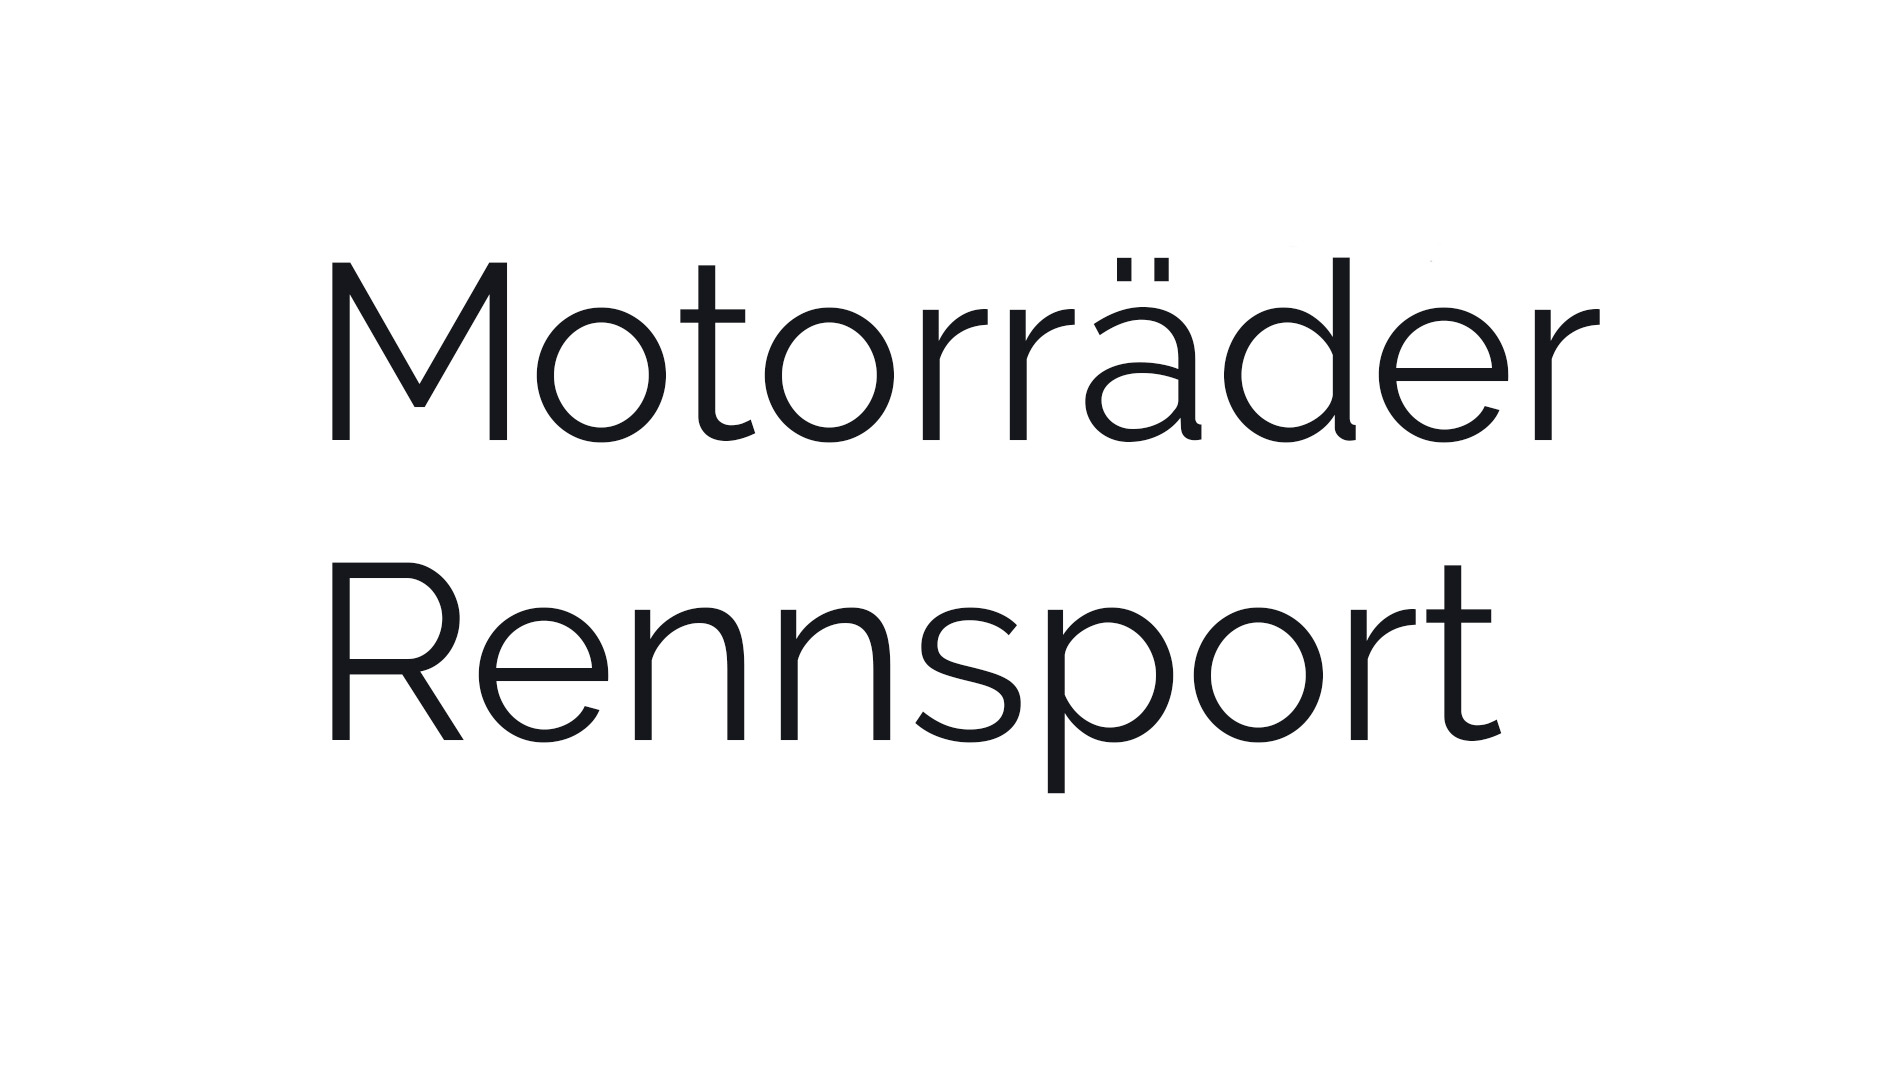 button-text-motorraeder-rennsport